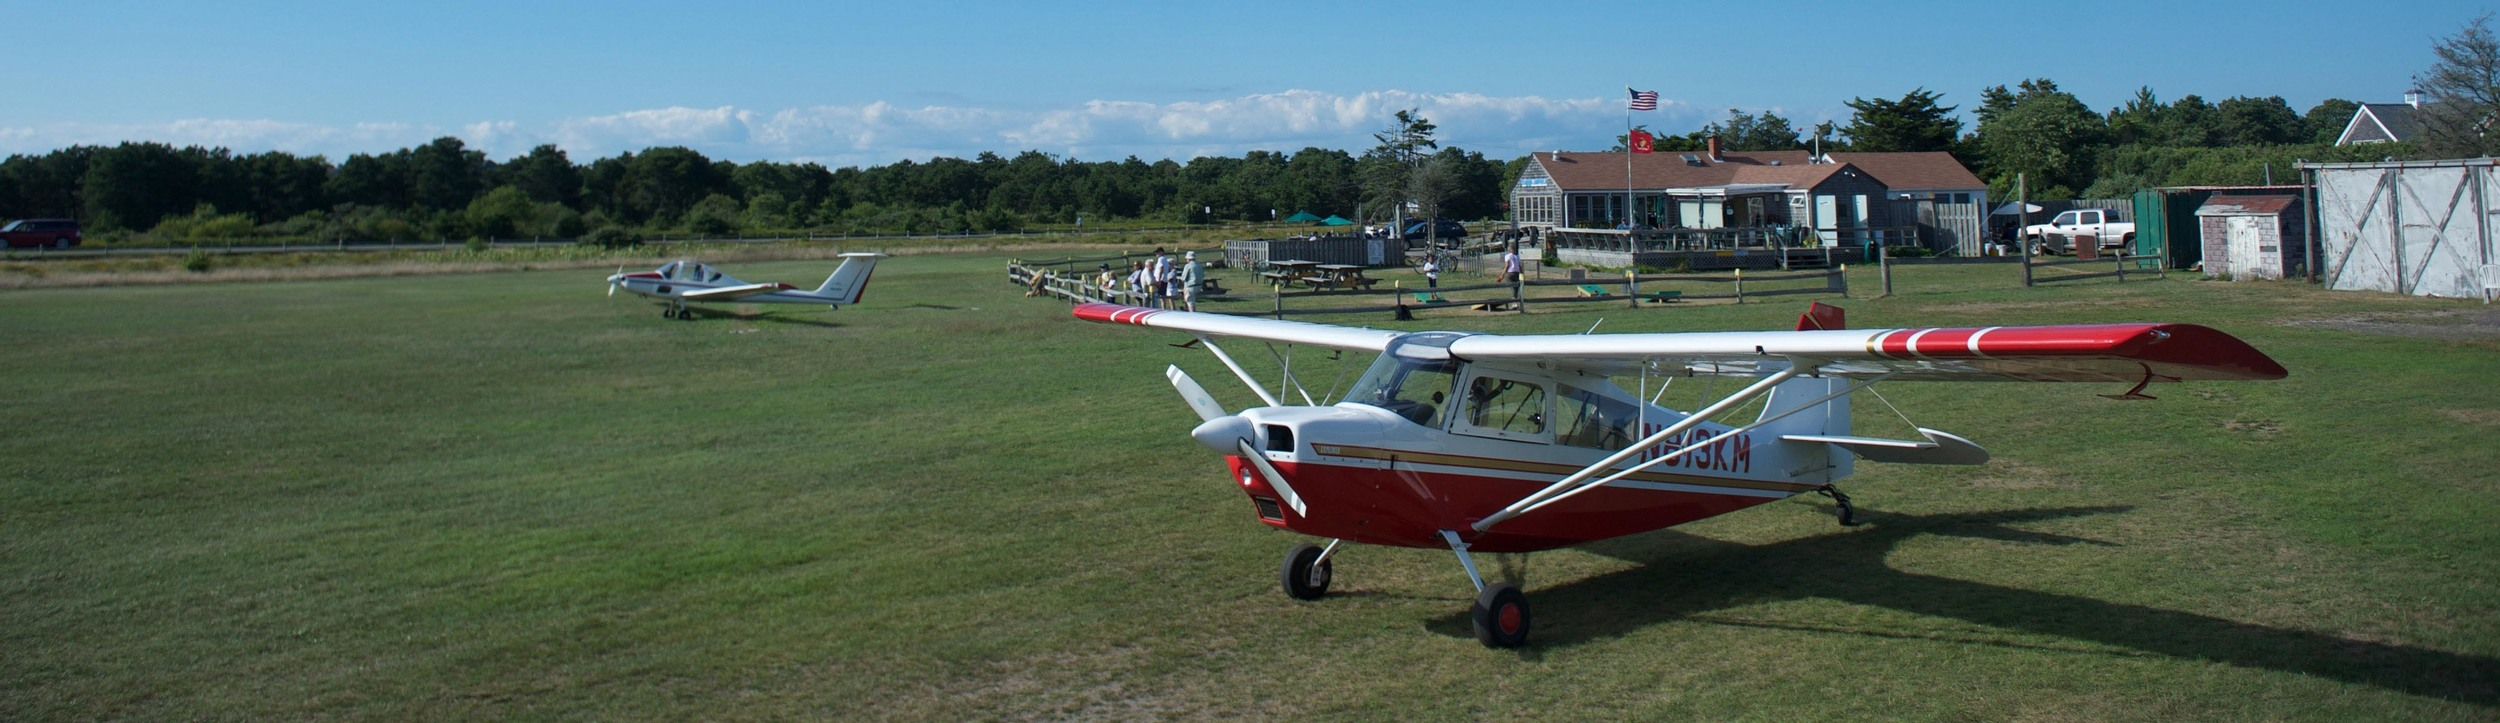 Learn Tailwheel at Katama